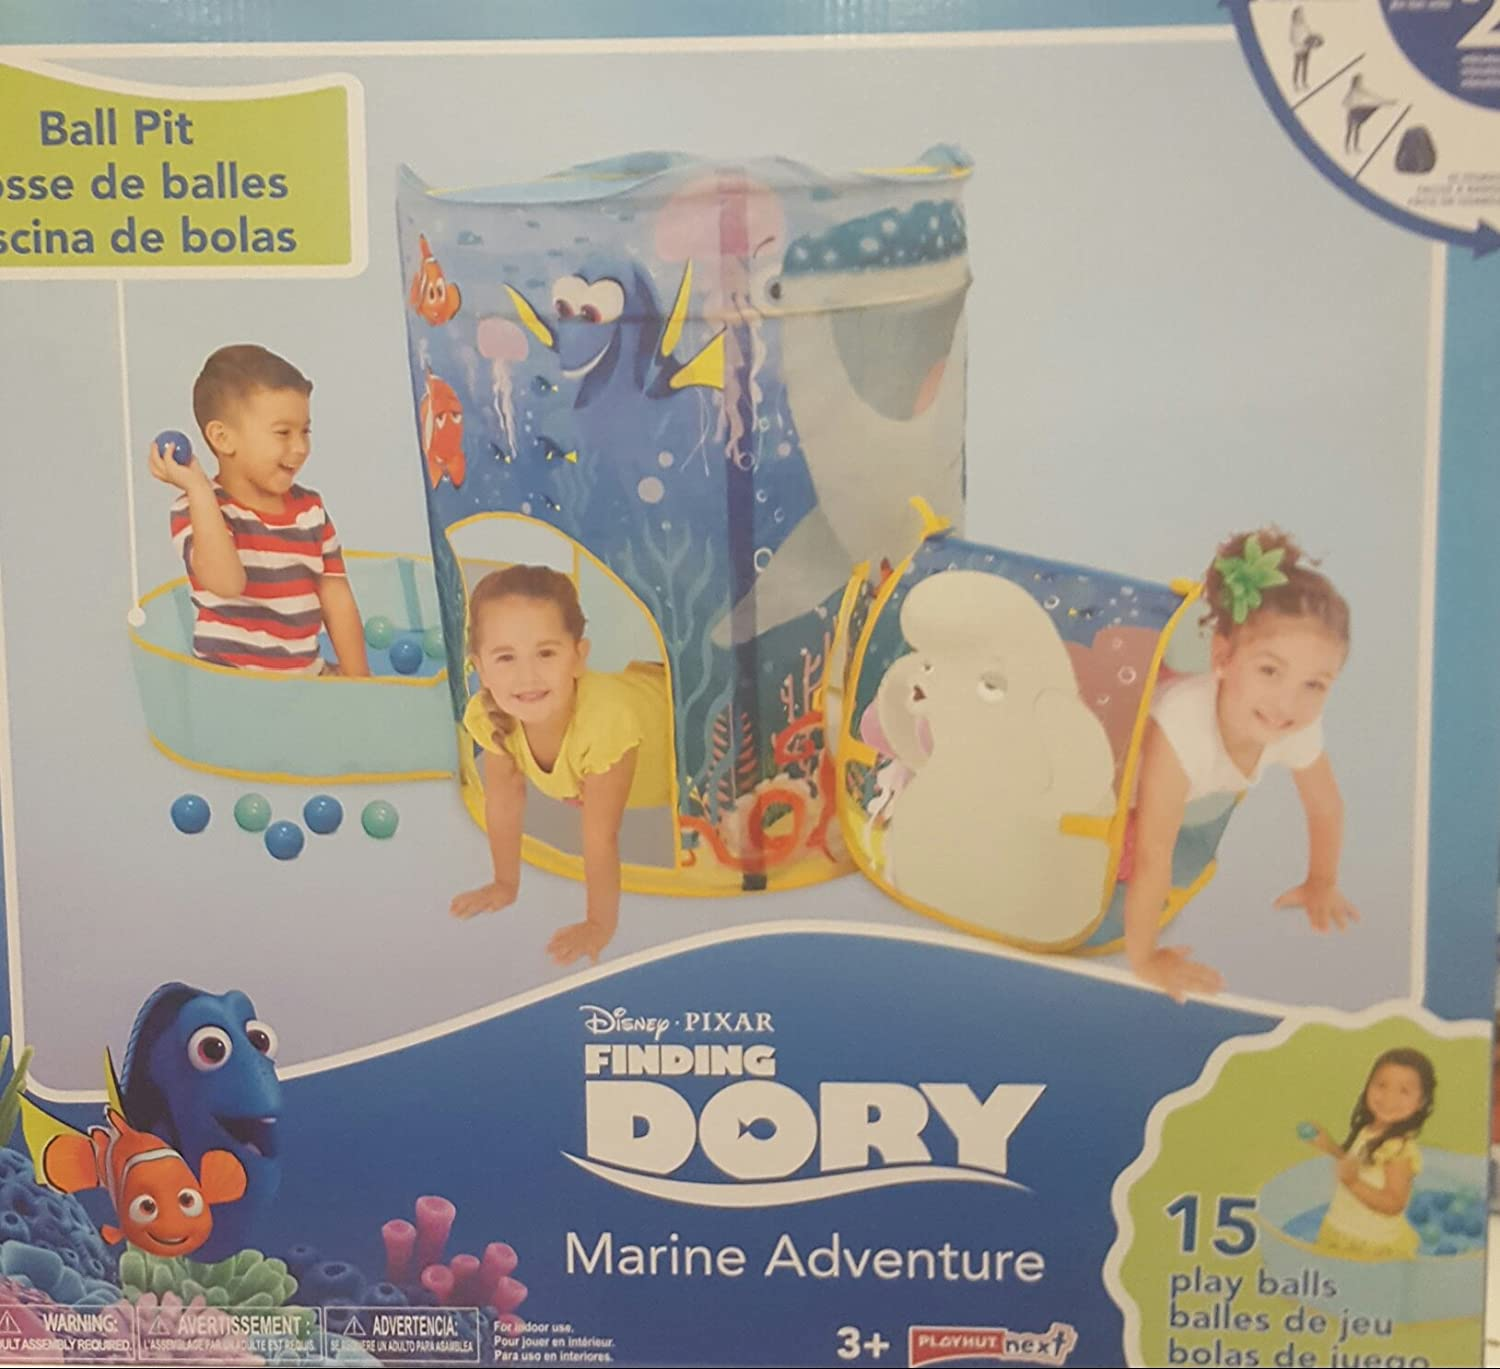 Amazon.com Playhut Tent Ball Pit Tunnel Disney Finding Dory Marine Adventure Toys u0026 Games  sc 1 st  Amazon.com & Amazon.com: Playhut Tent Ball Pit Tunnel Disney Finding Dory ...